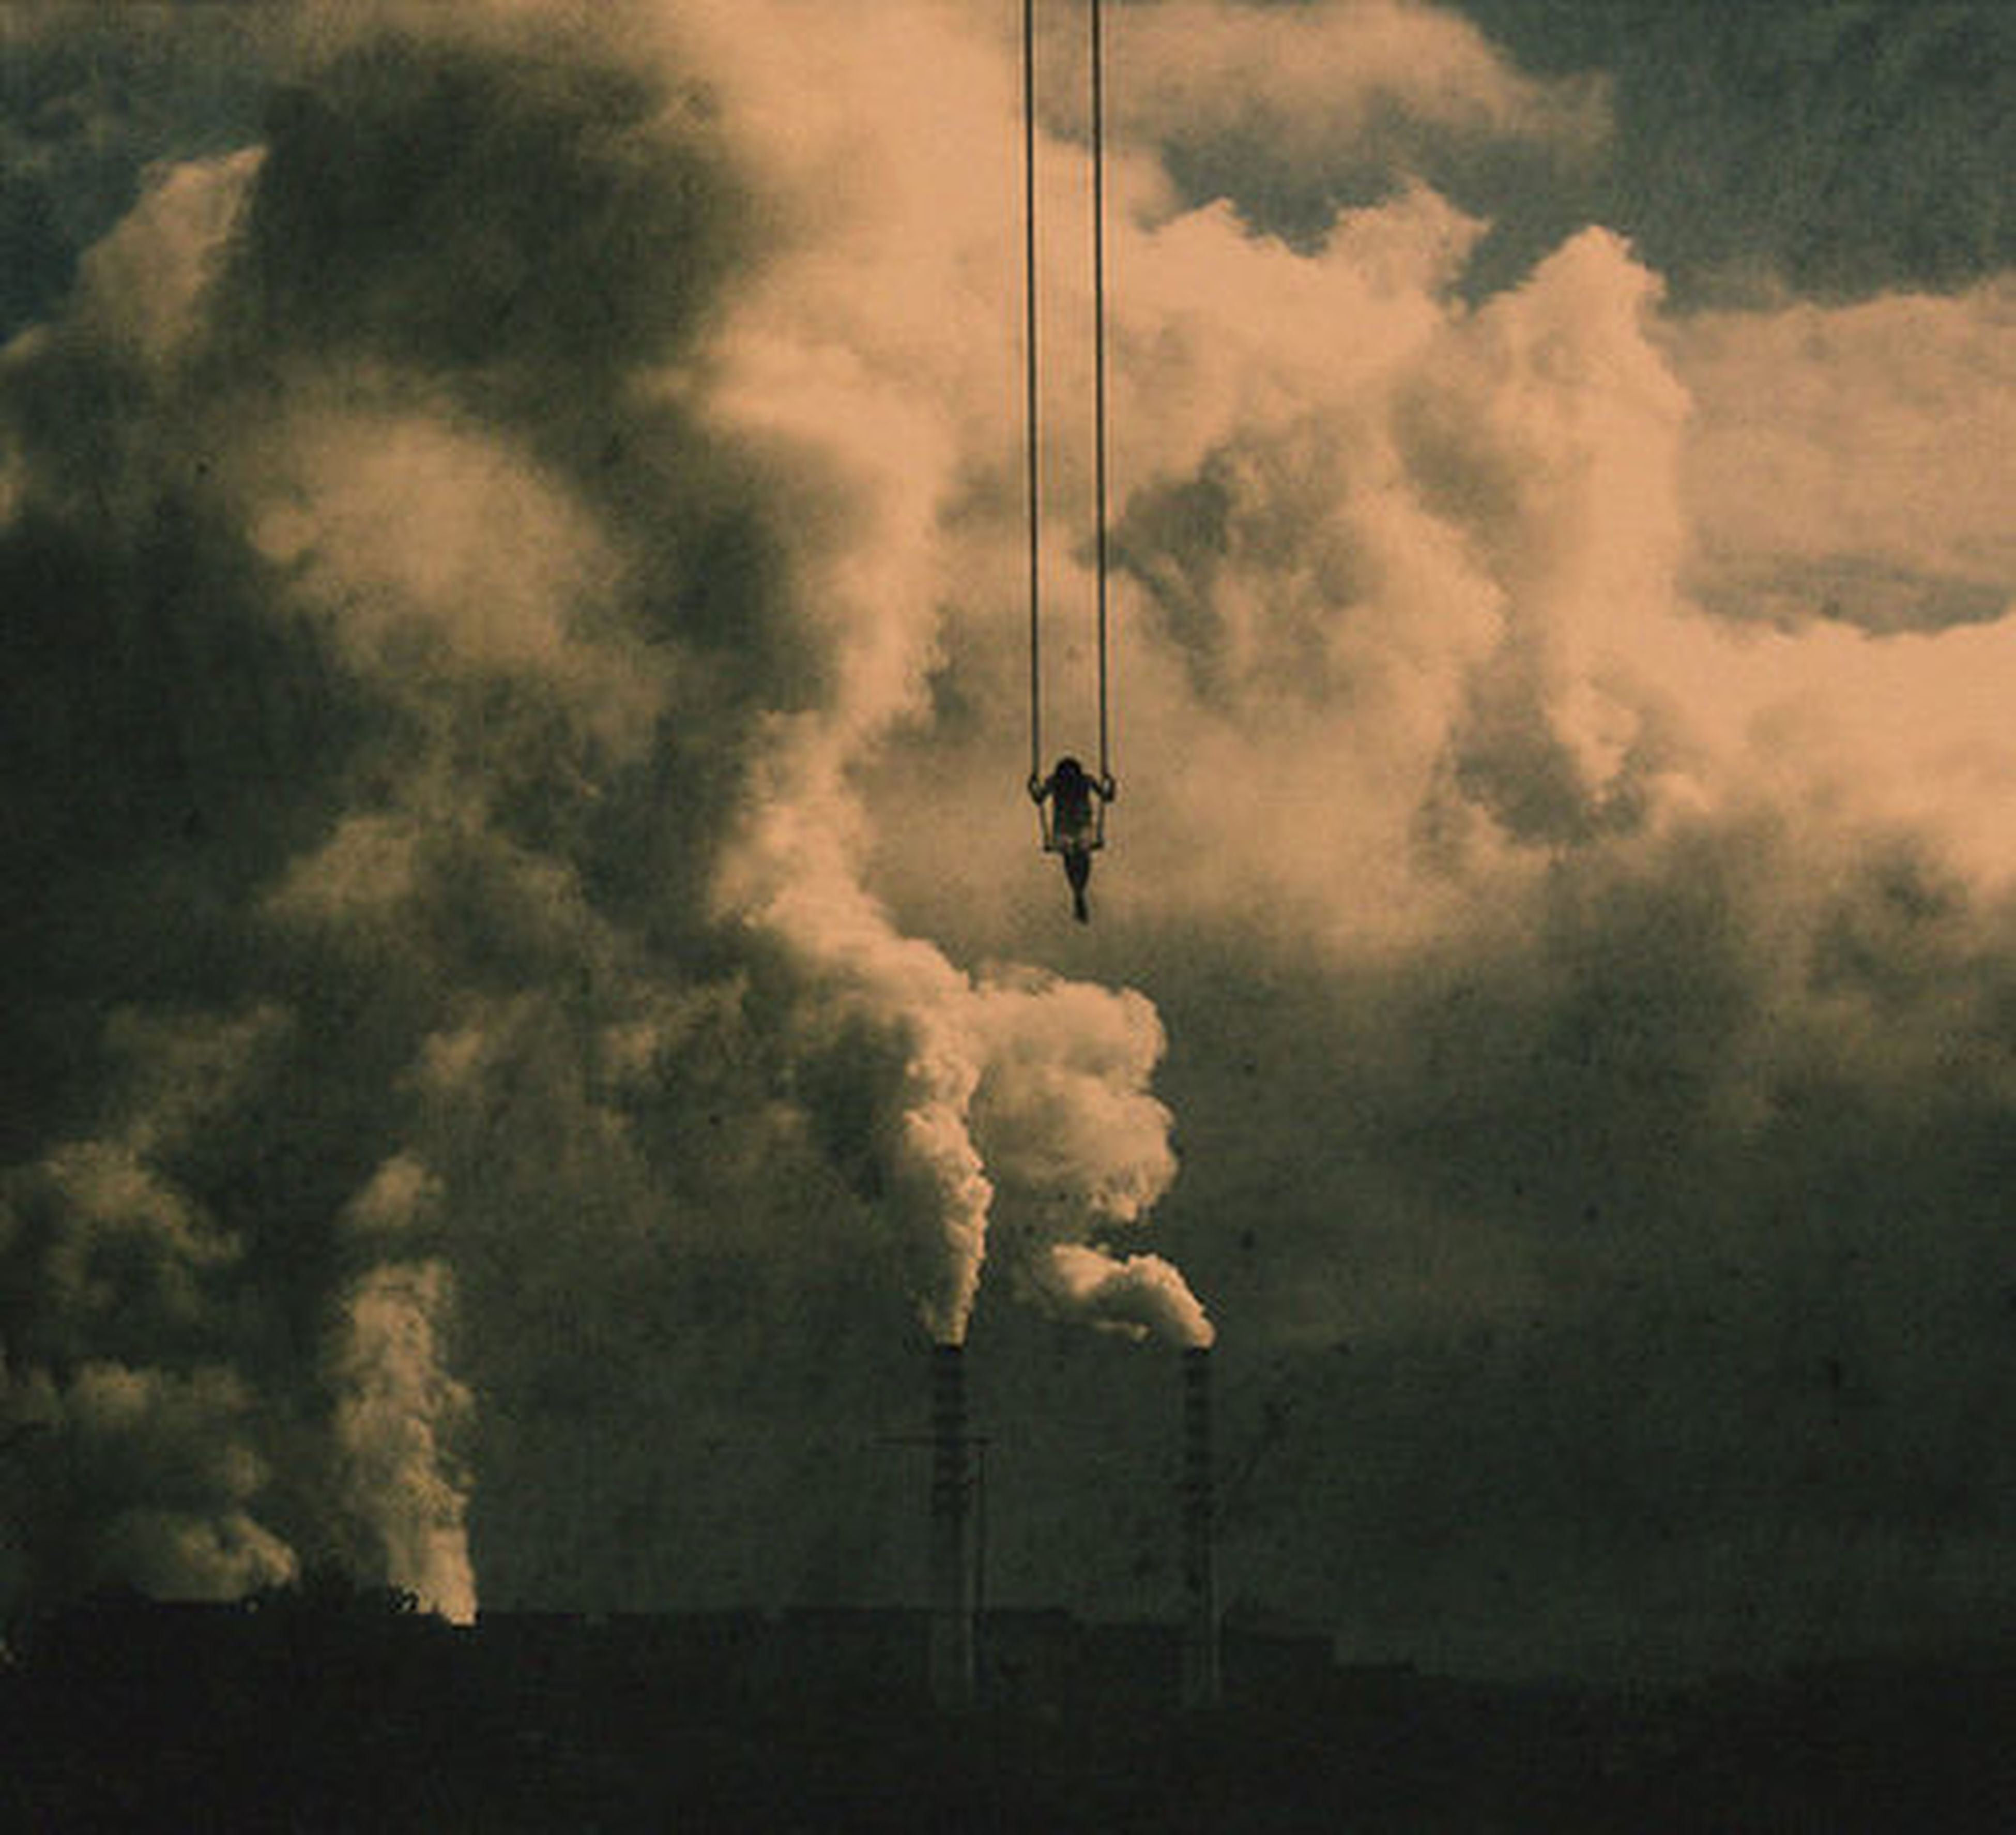 sky, cloud - sky, low angle view, cloudy, weather, cloud, street light, silhouette, transportation, overcast, nature, outdoors, lighting equipment, mode of transport, day, power line, no people, beauty in nature, dusk, electricity